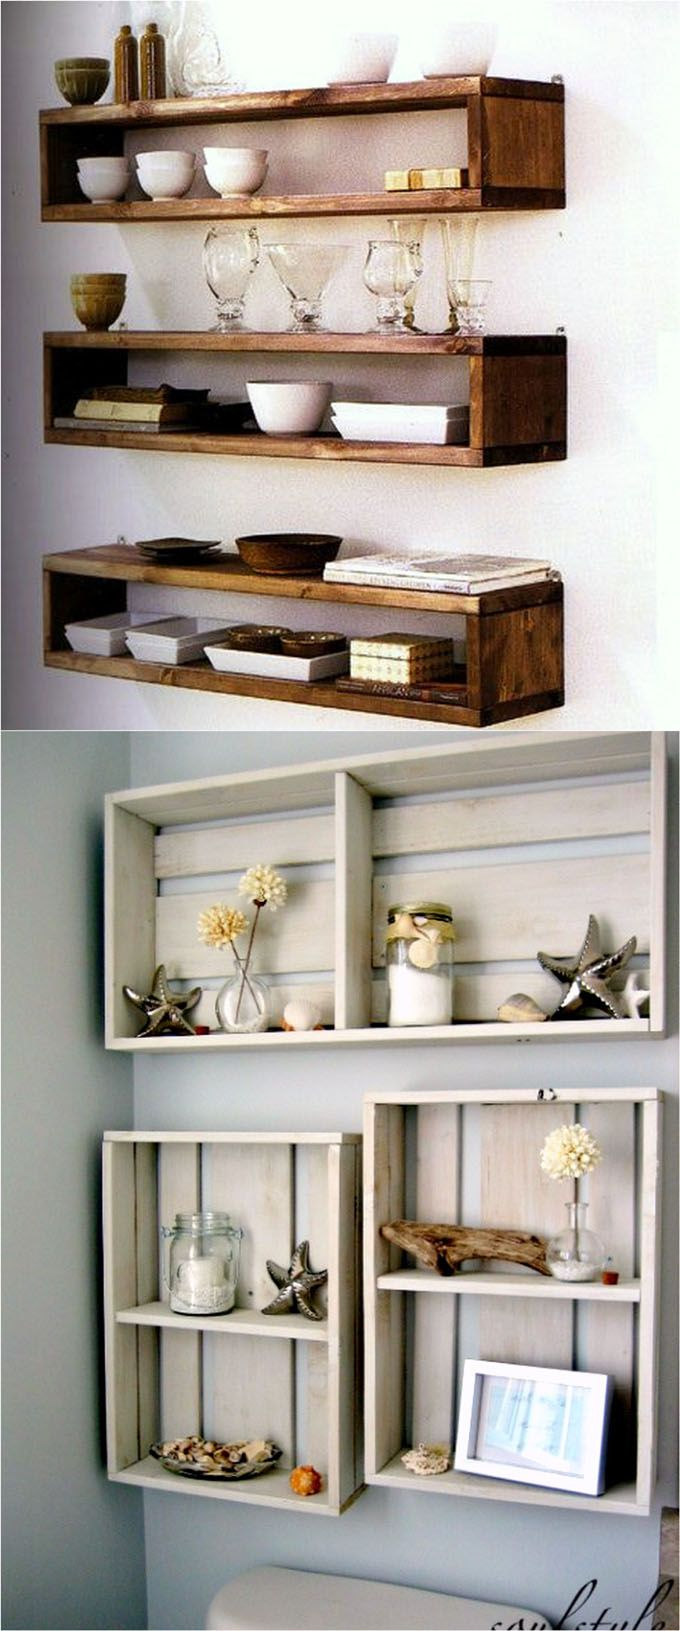 16 Easy And Stylish DIY Floating Shelves U0026 Wall Shelves | Projects To Try |  Pinterest | Wall Shelving, Shelf Wall And Shelves